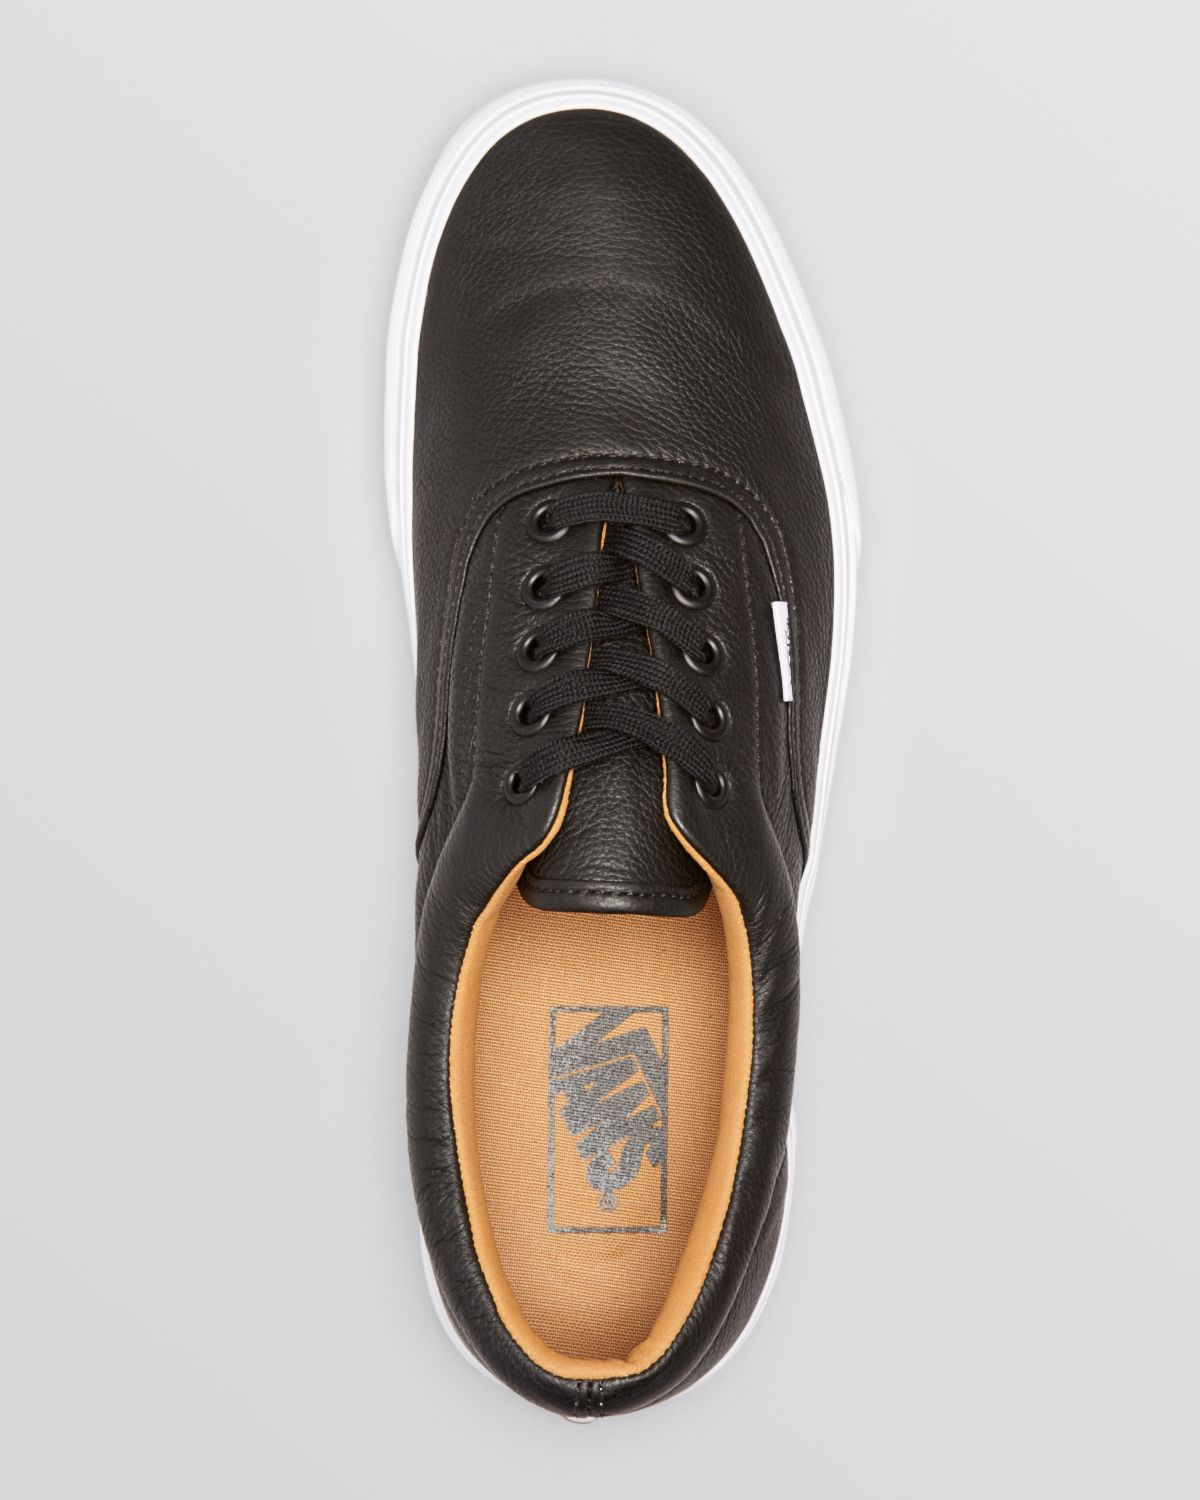 2e90baecf5f Lyst - Vans Era Premium Leather Lace-Up Sneakers in Black for Men